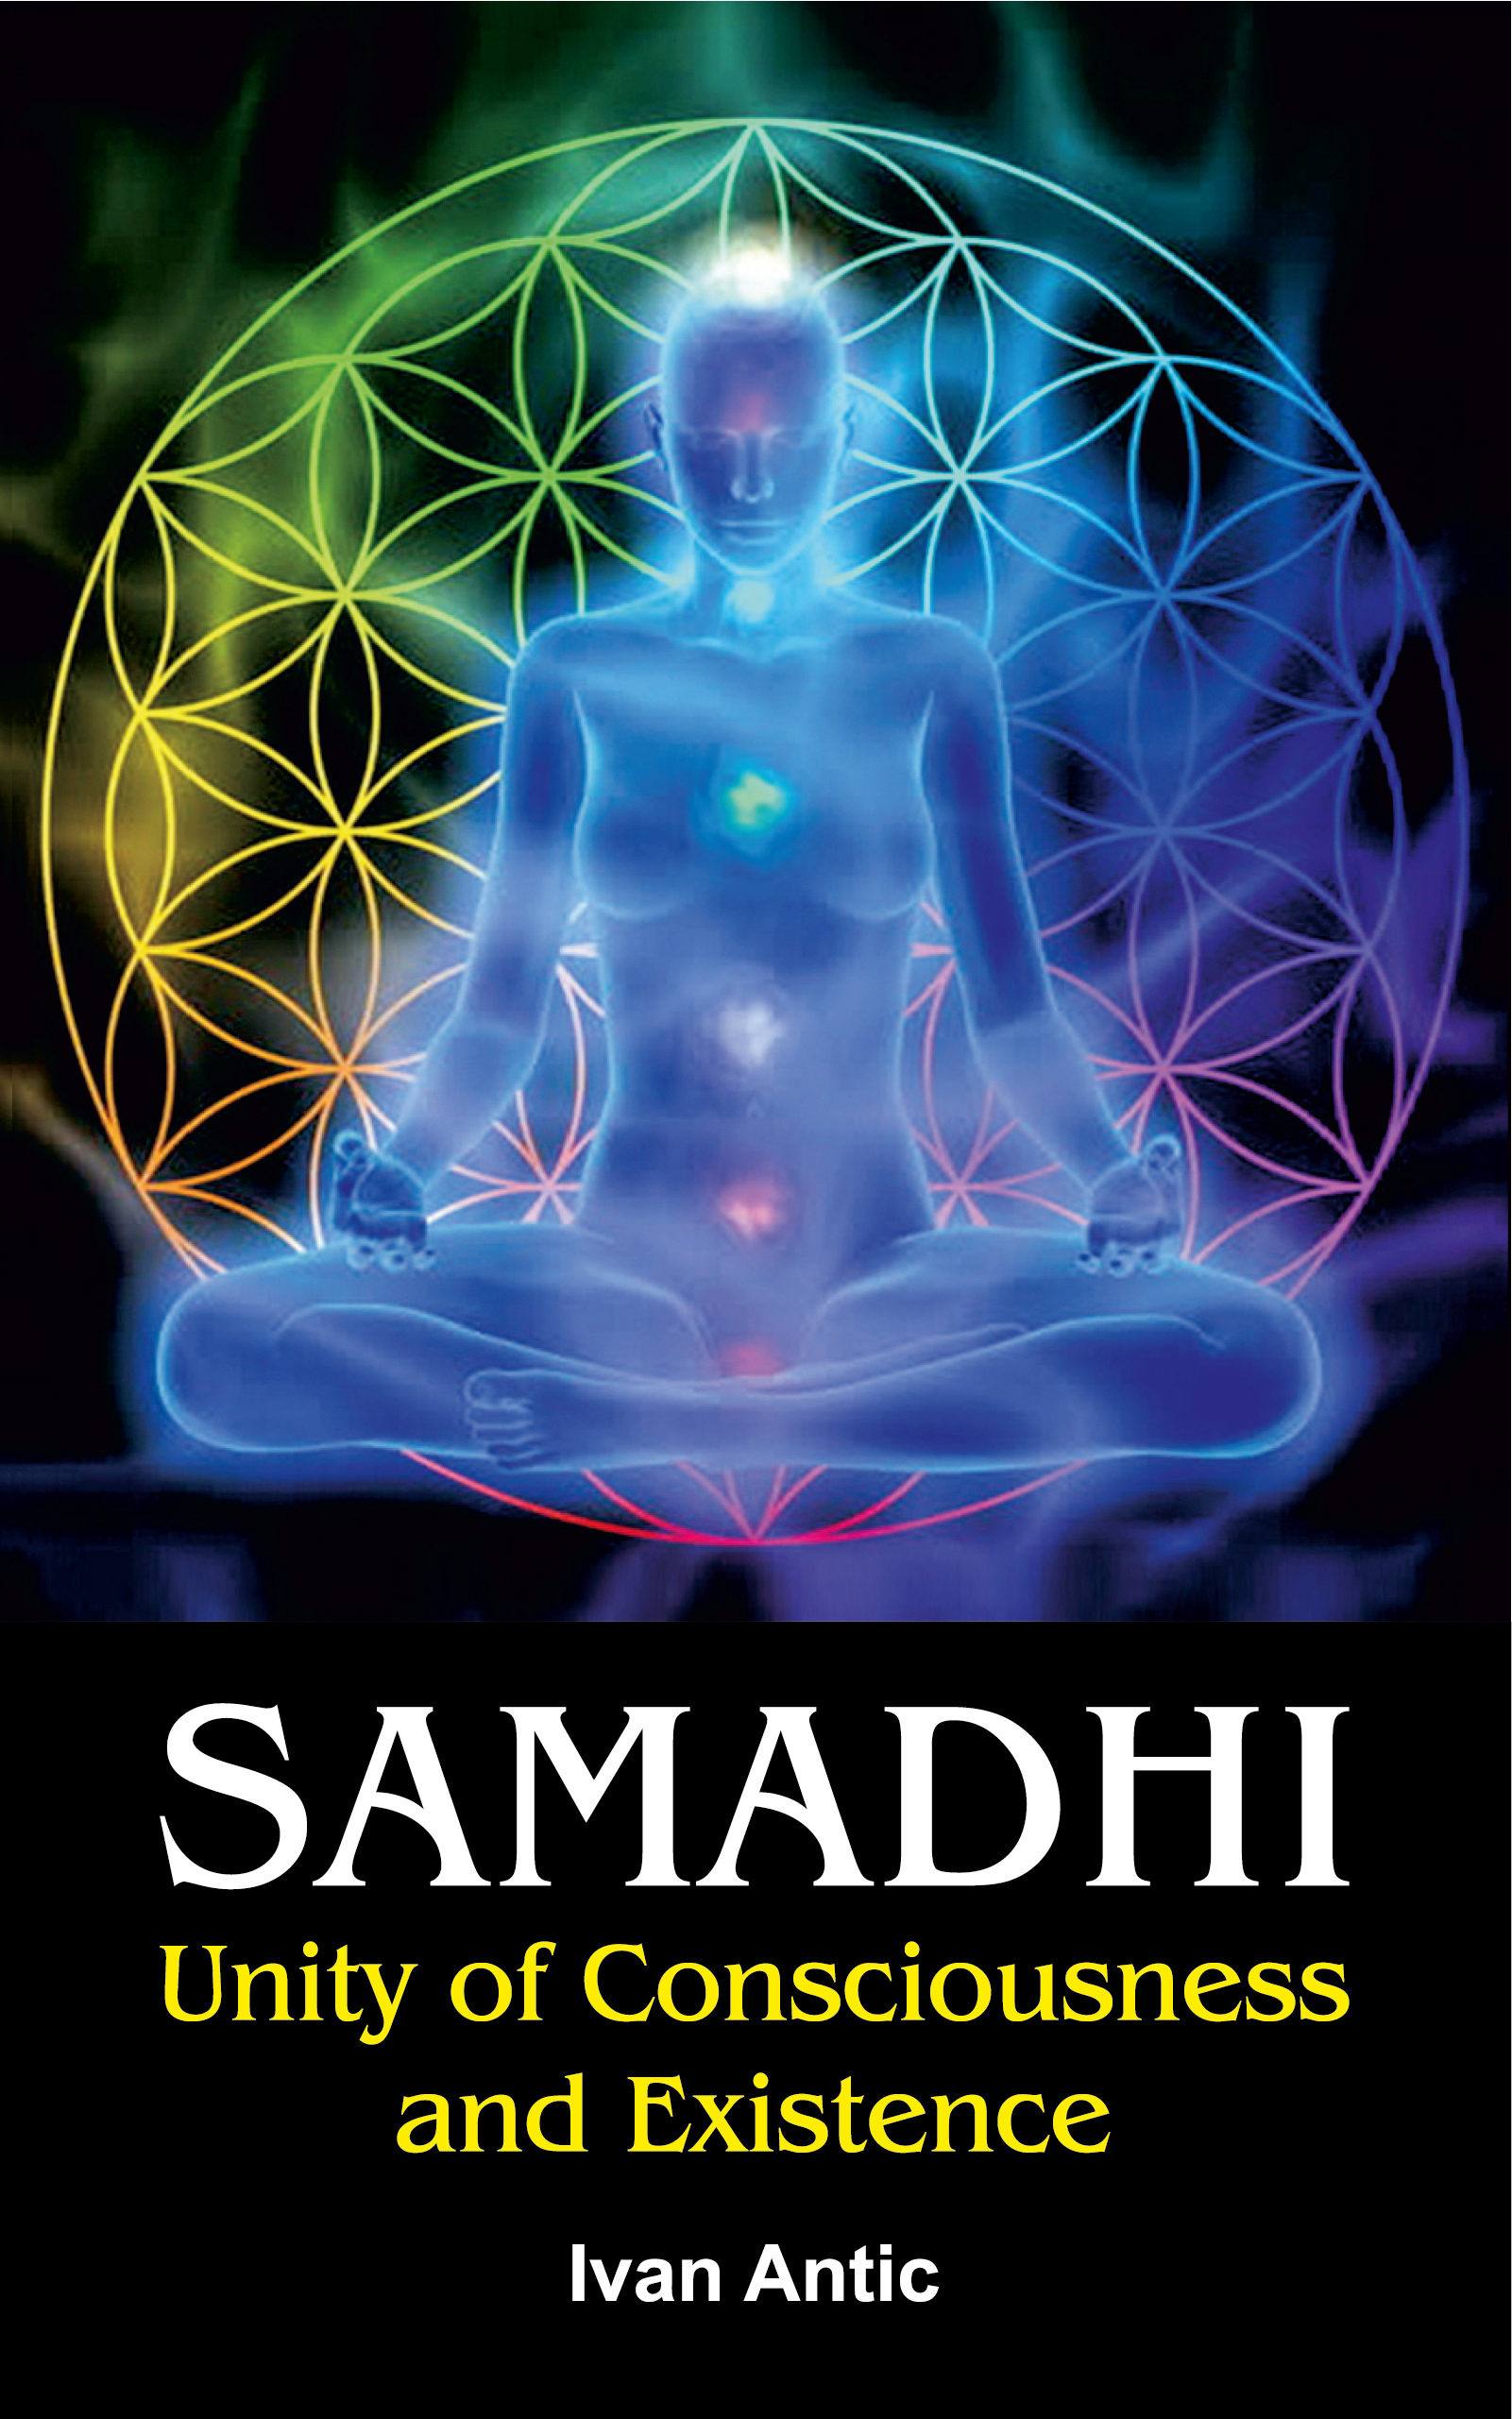 Samadhi: Unity of Consciousness and Existence - Book Cover